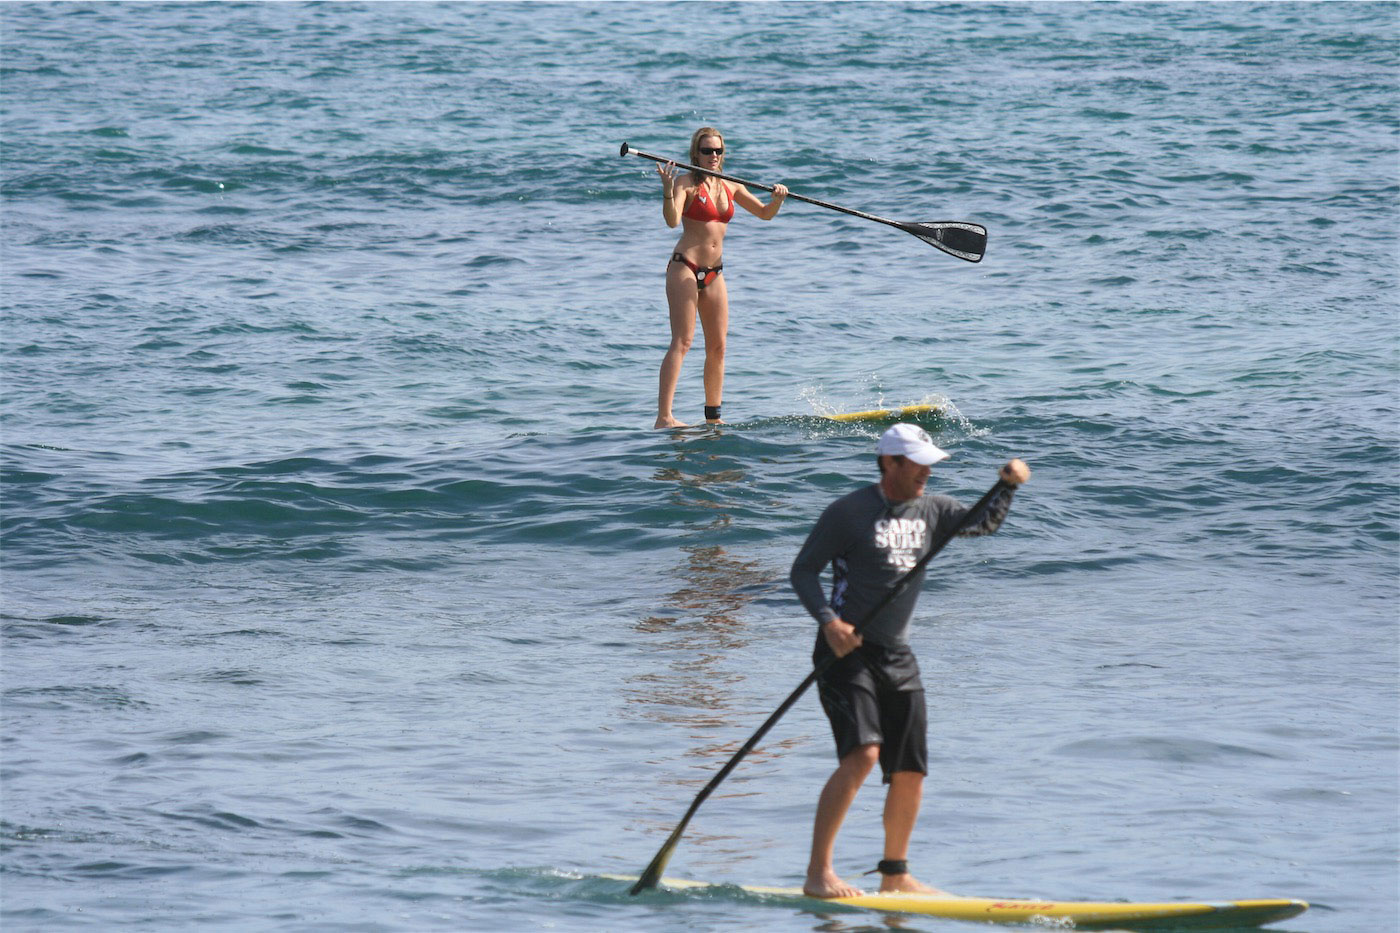 Mike Doyle Surf School SUP Photo Gallery